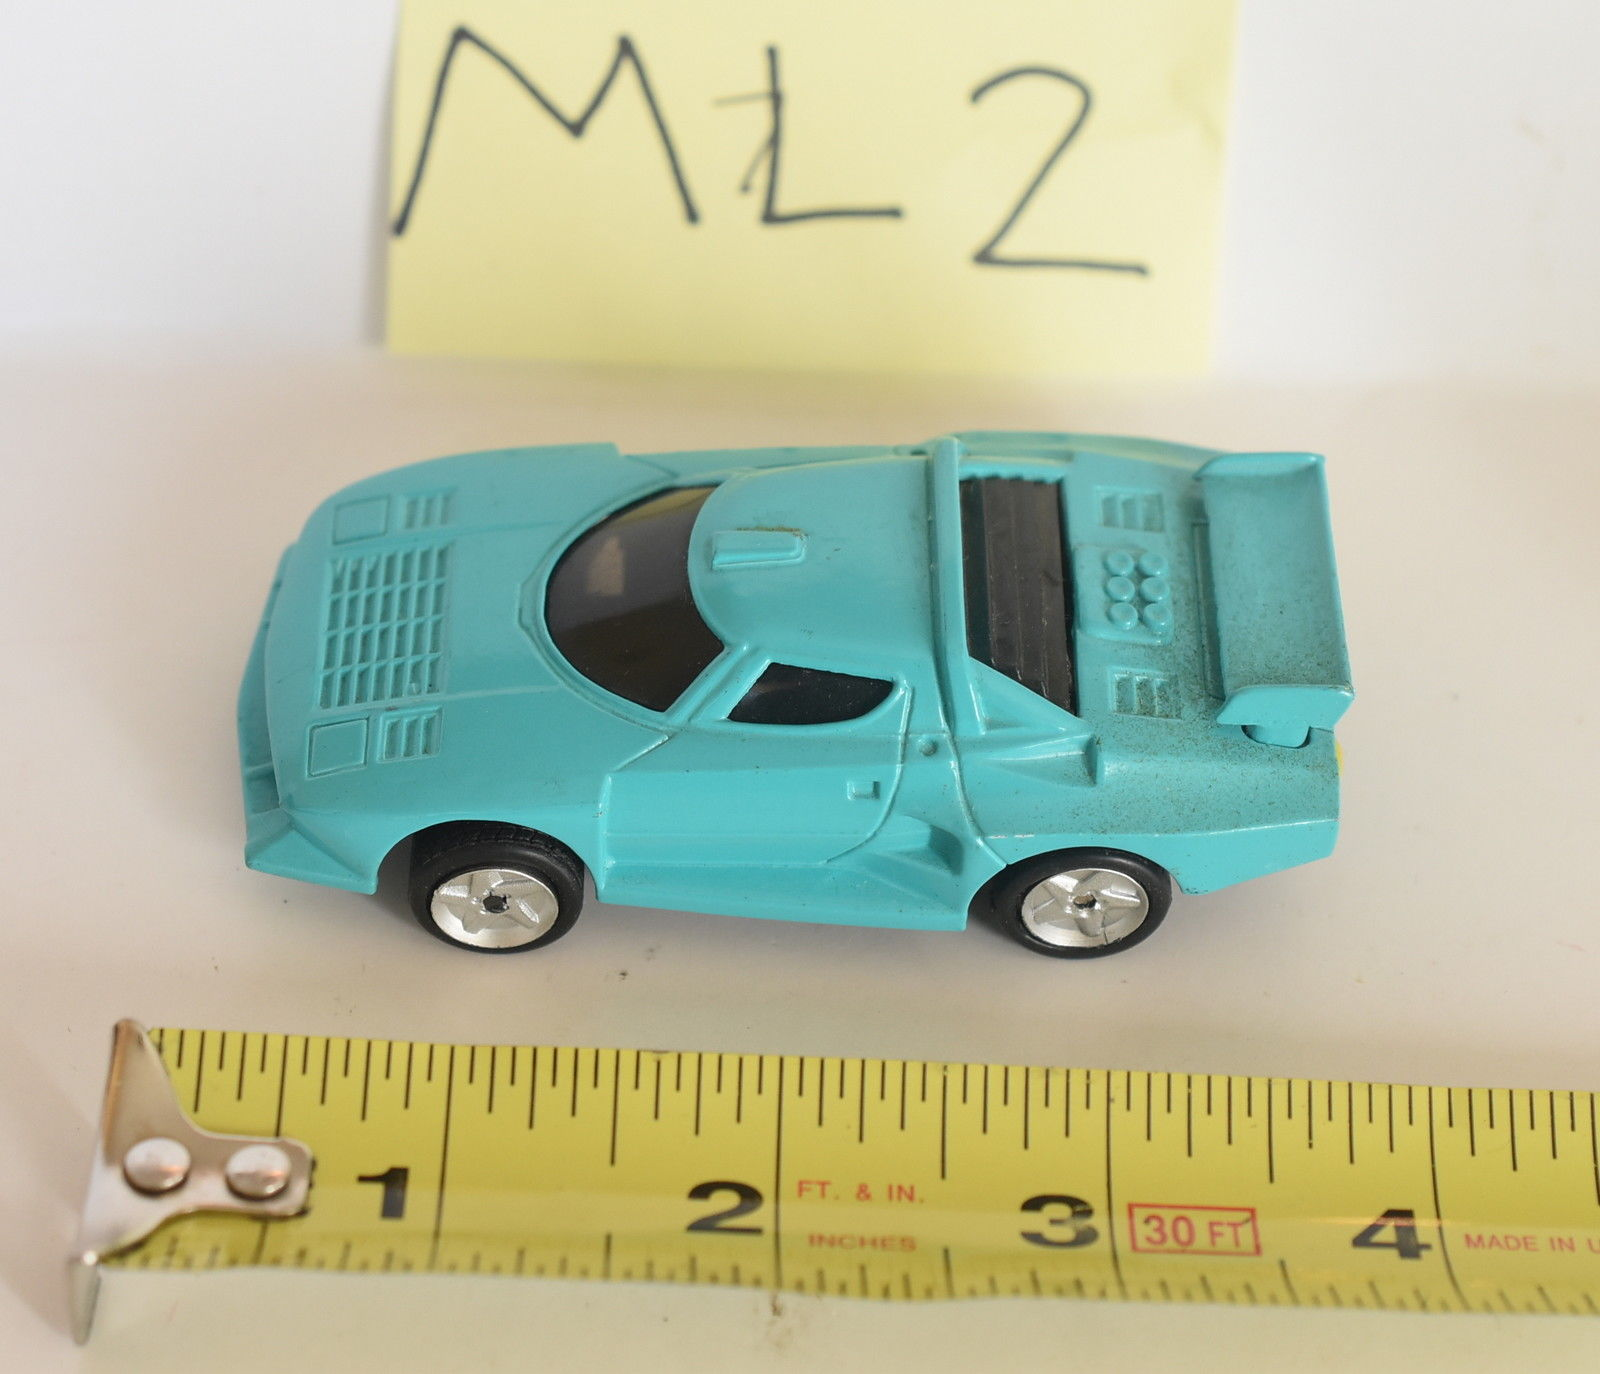 MC TOY LANCIA - SCALE 1/45 - LOOSE - Click Image to Close